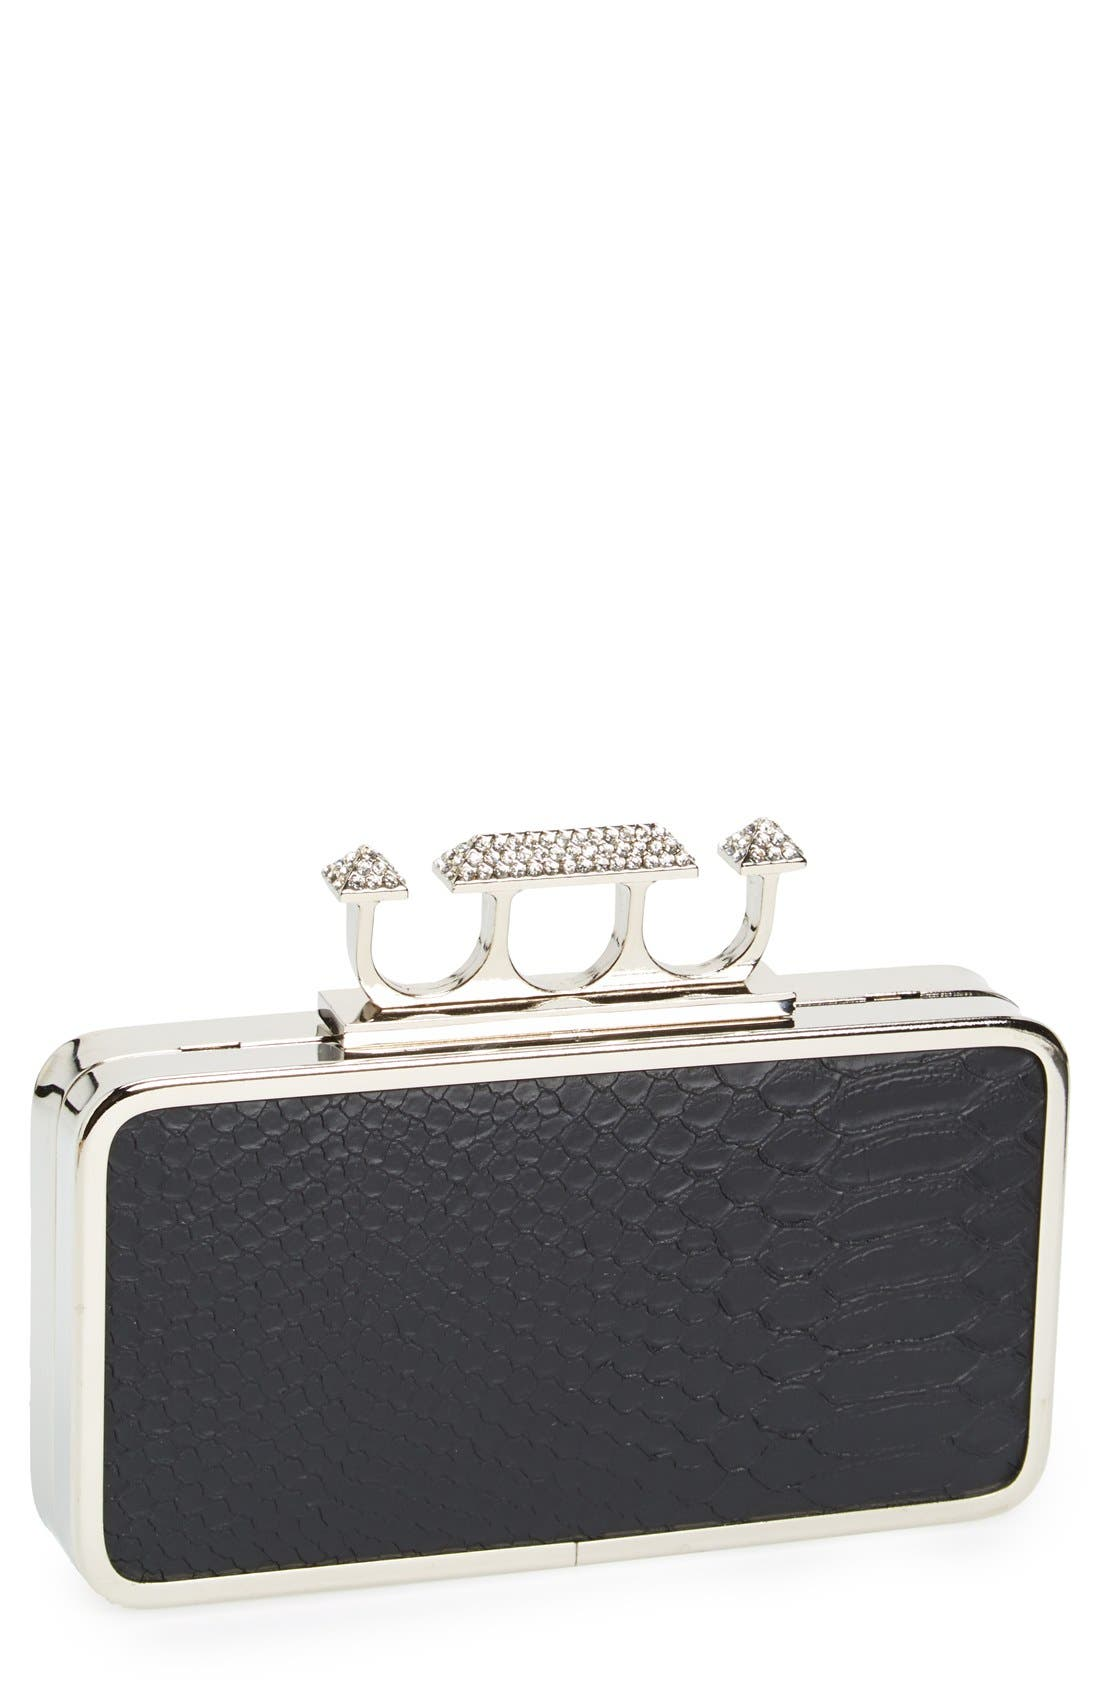 Couture Knuckle Clasp Clutch,                         Main,                         color, Black